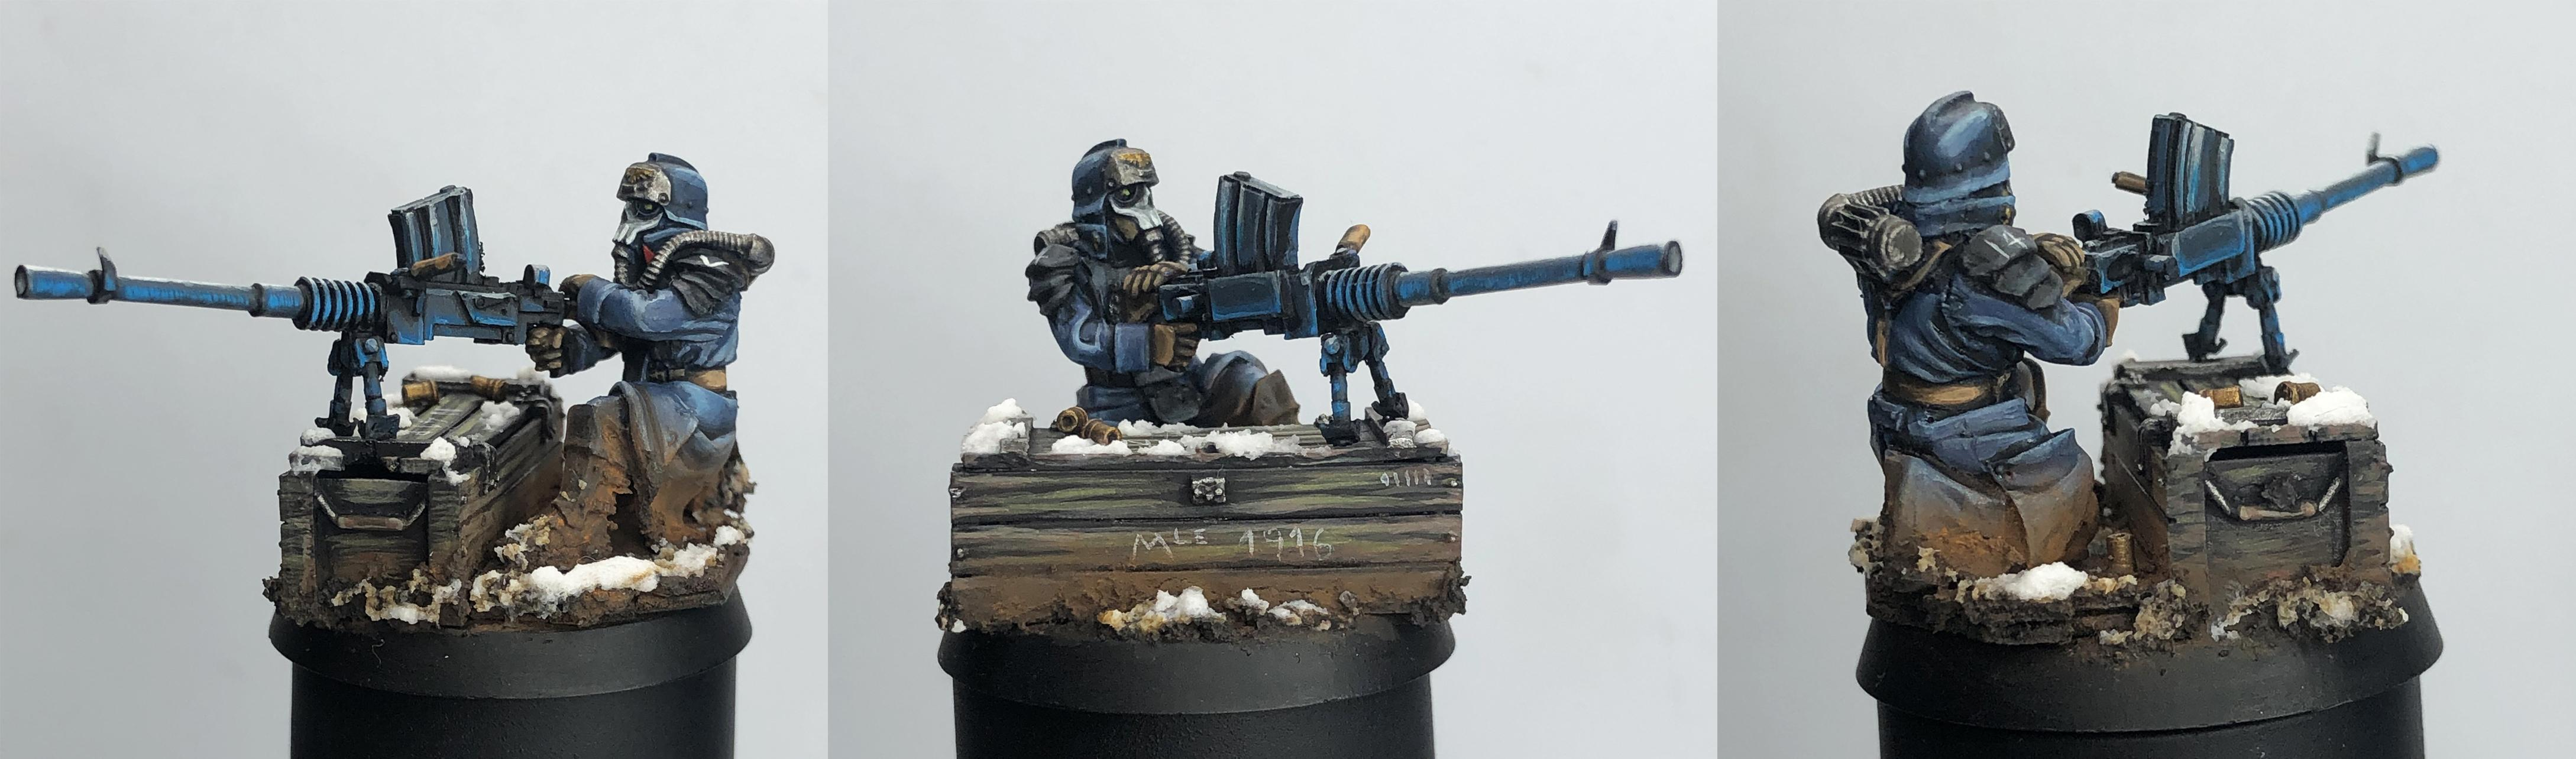 Astra Militarum, Death, Forge World, Korps, Warhamm, Warhammer Fantasy